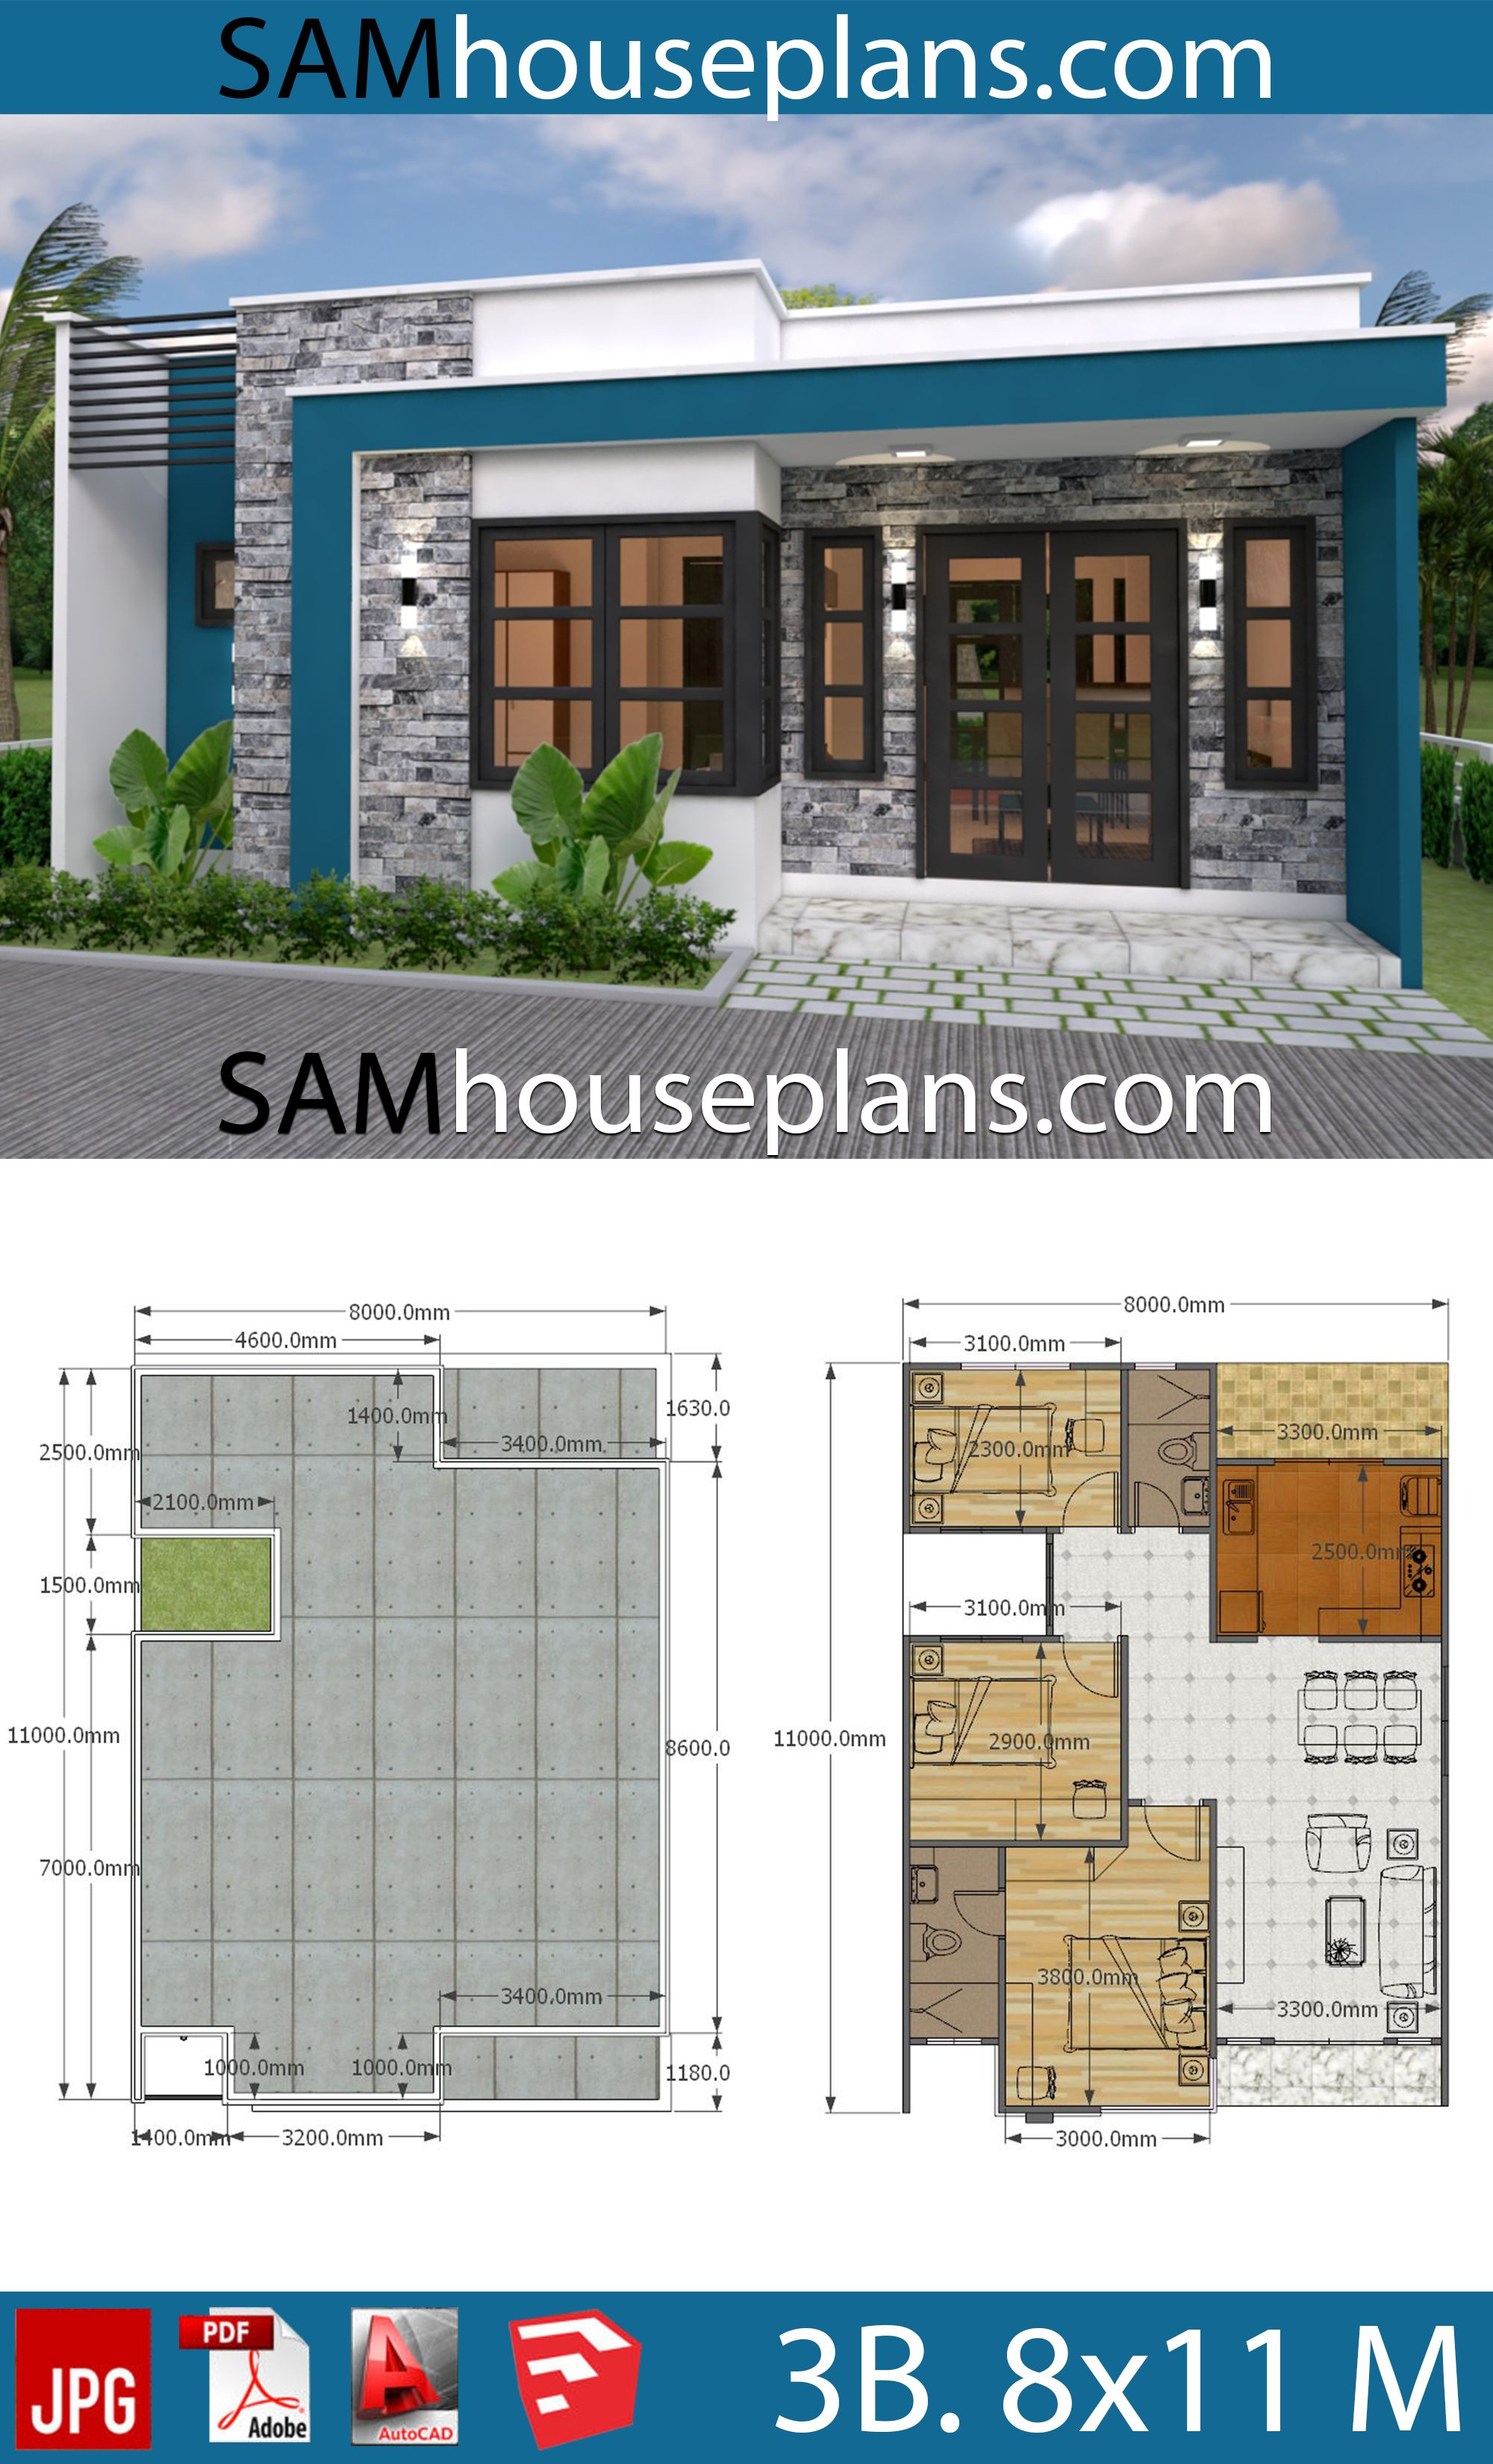 House Plans 8x11 With 3 Bedrooms Full Plans Sam House Plans In 2020 Simple House Plans Affordable House Plans Bungalow House Design